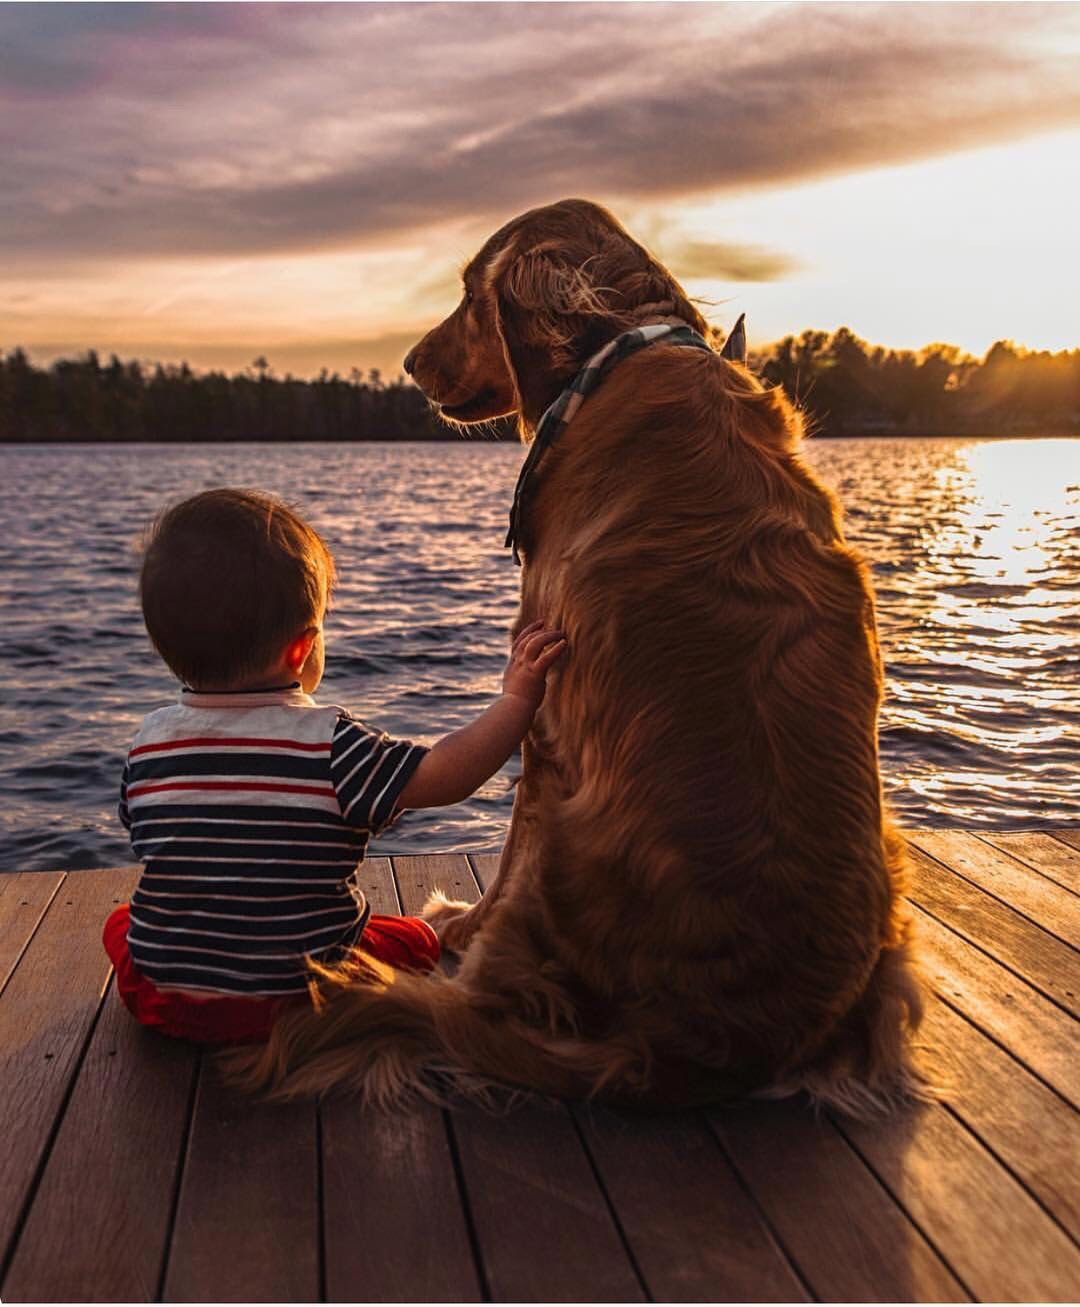 Pin by danielle pape on dogs pinterest animals dogs and